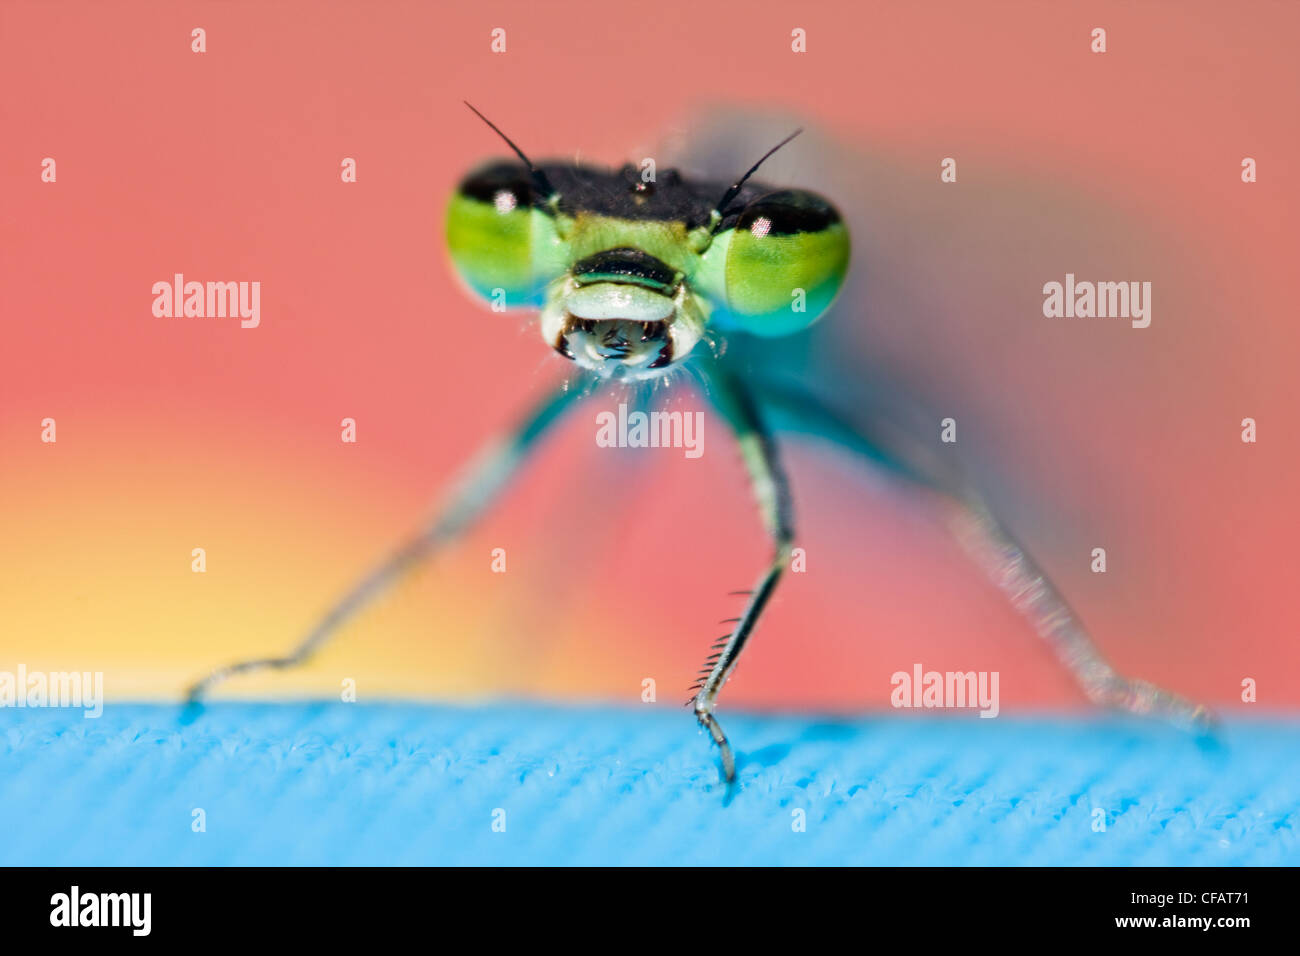 Close-up of dragonfly avec bouche ouverte Photo Stock